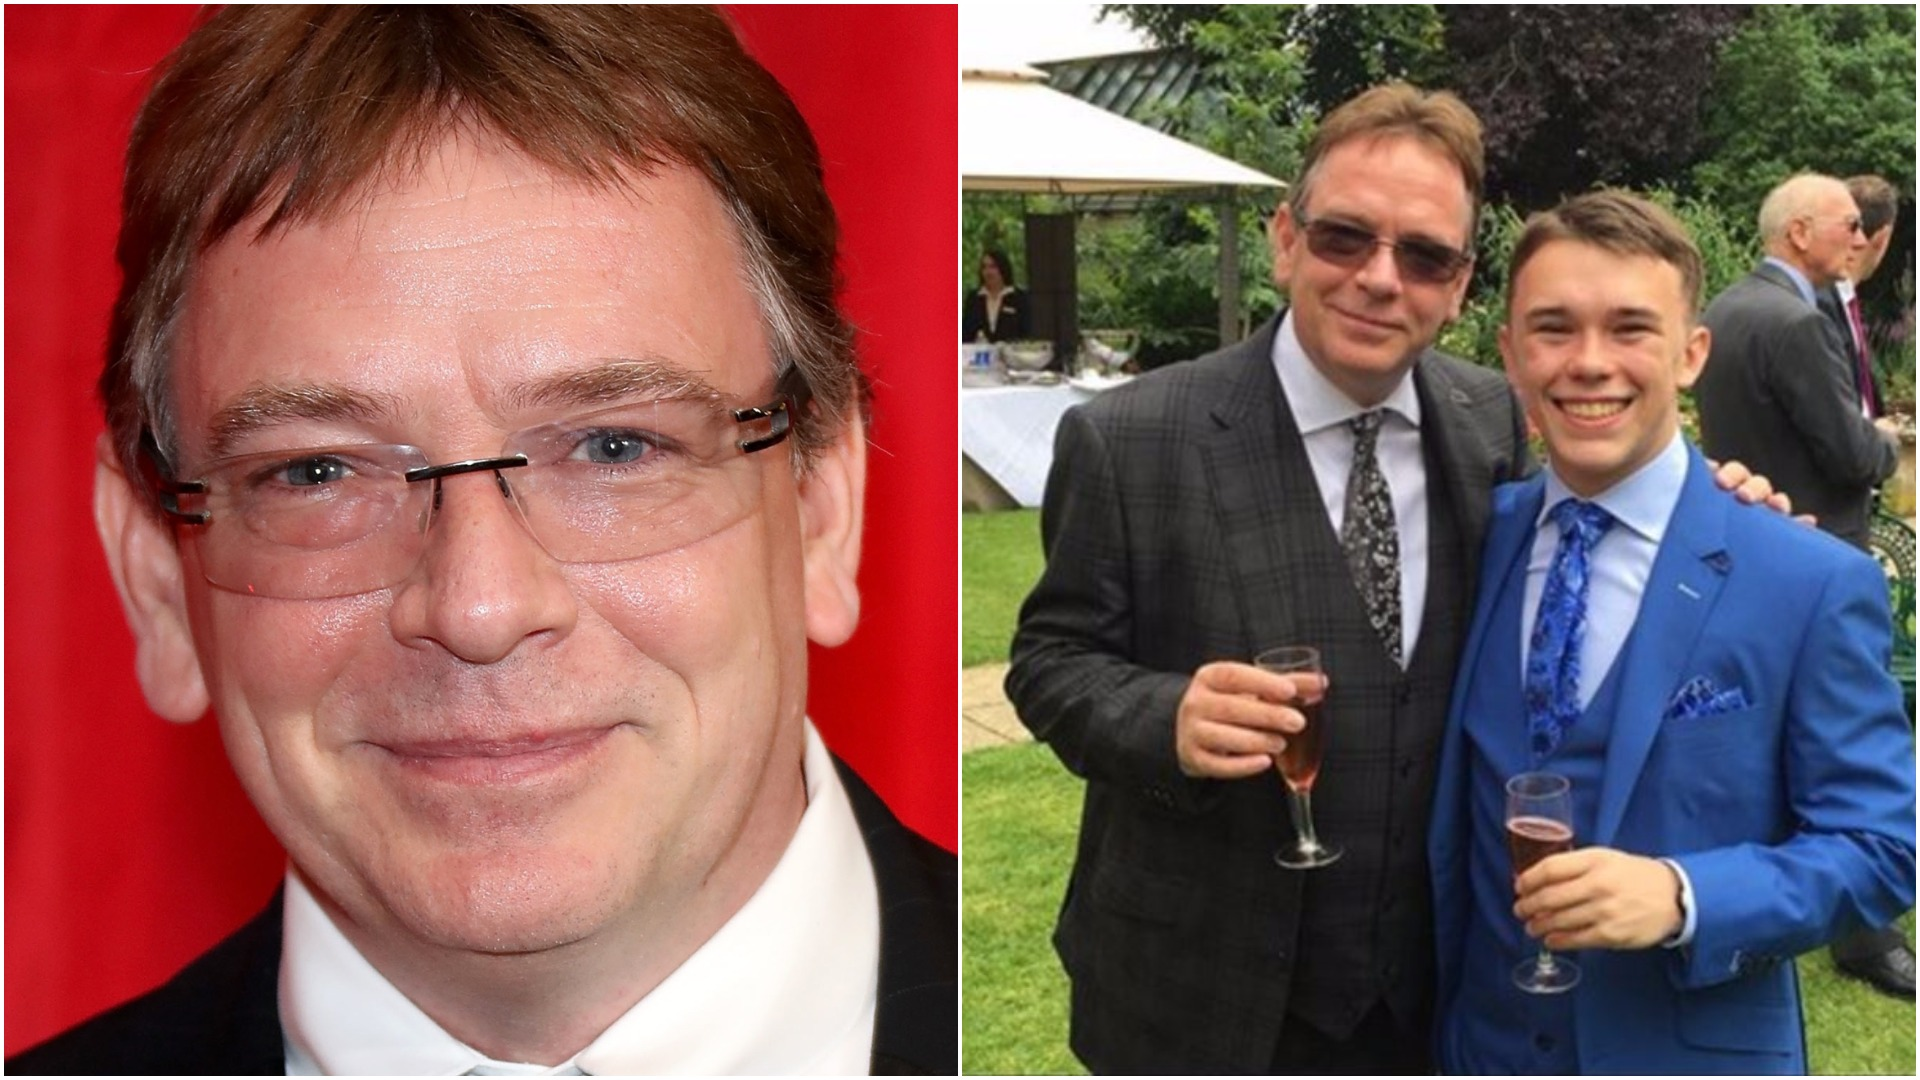 EastEnders star Adam Woodyatt's son hit by a car and put in induced coma but still plans to run London Marathon